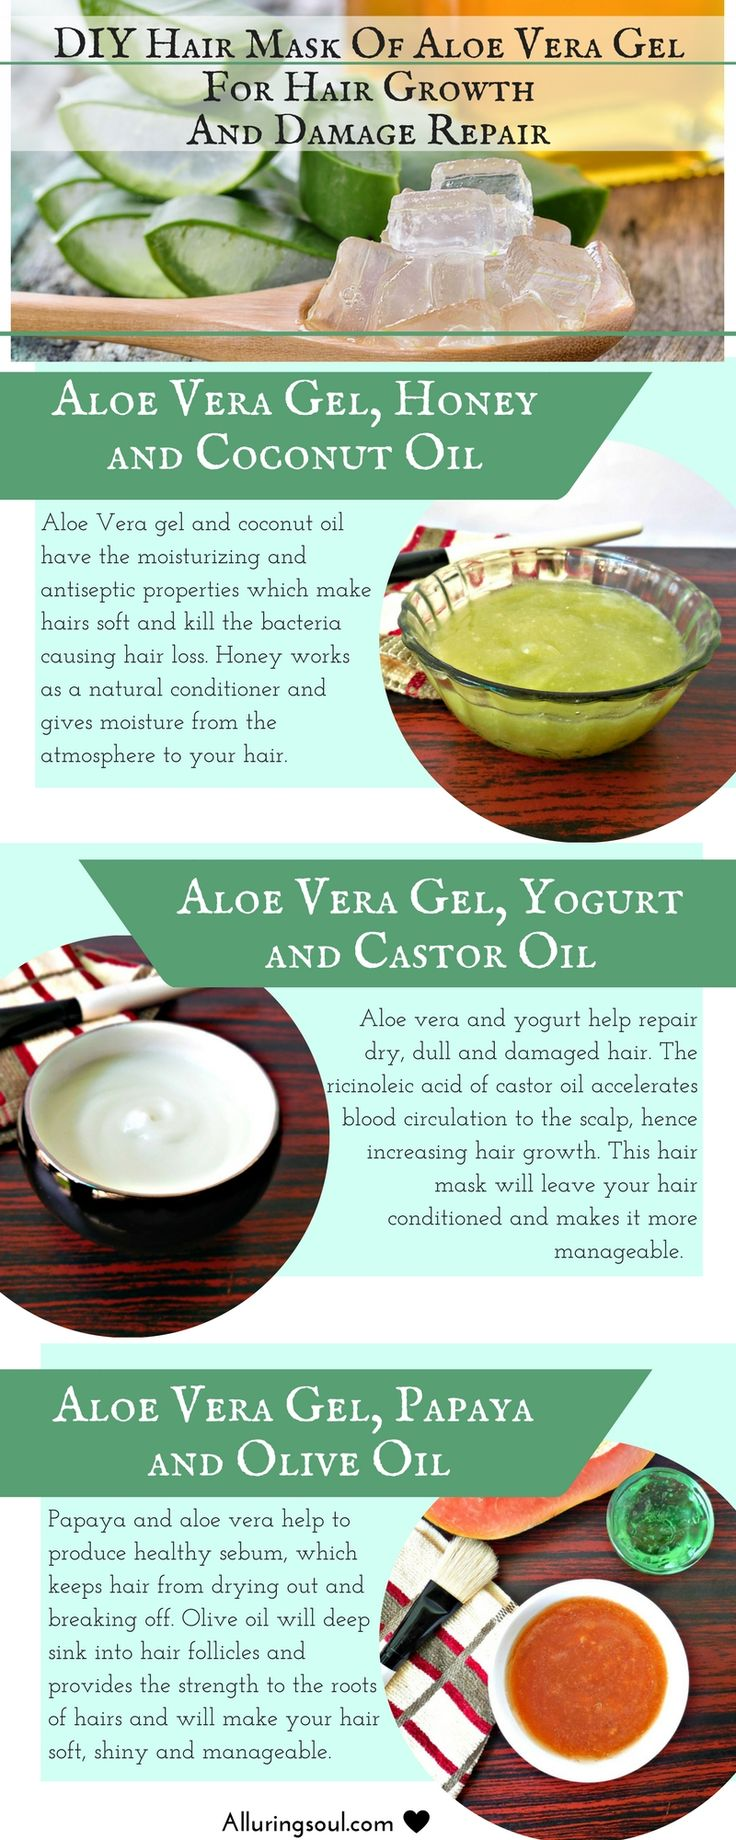 Apply hair mask of aloe vera gel which promotes hair growth, repairs damaged hai...